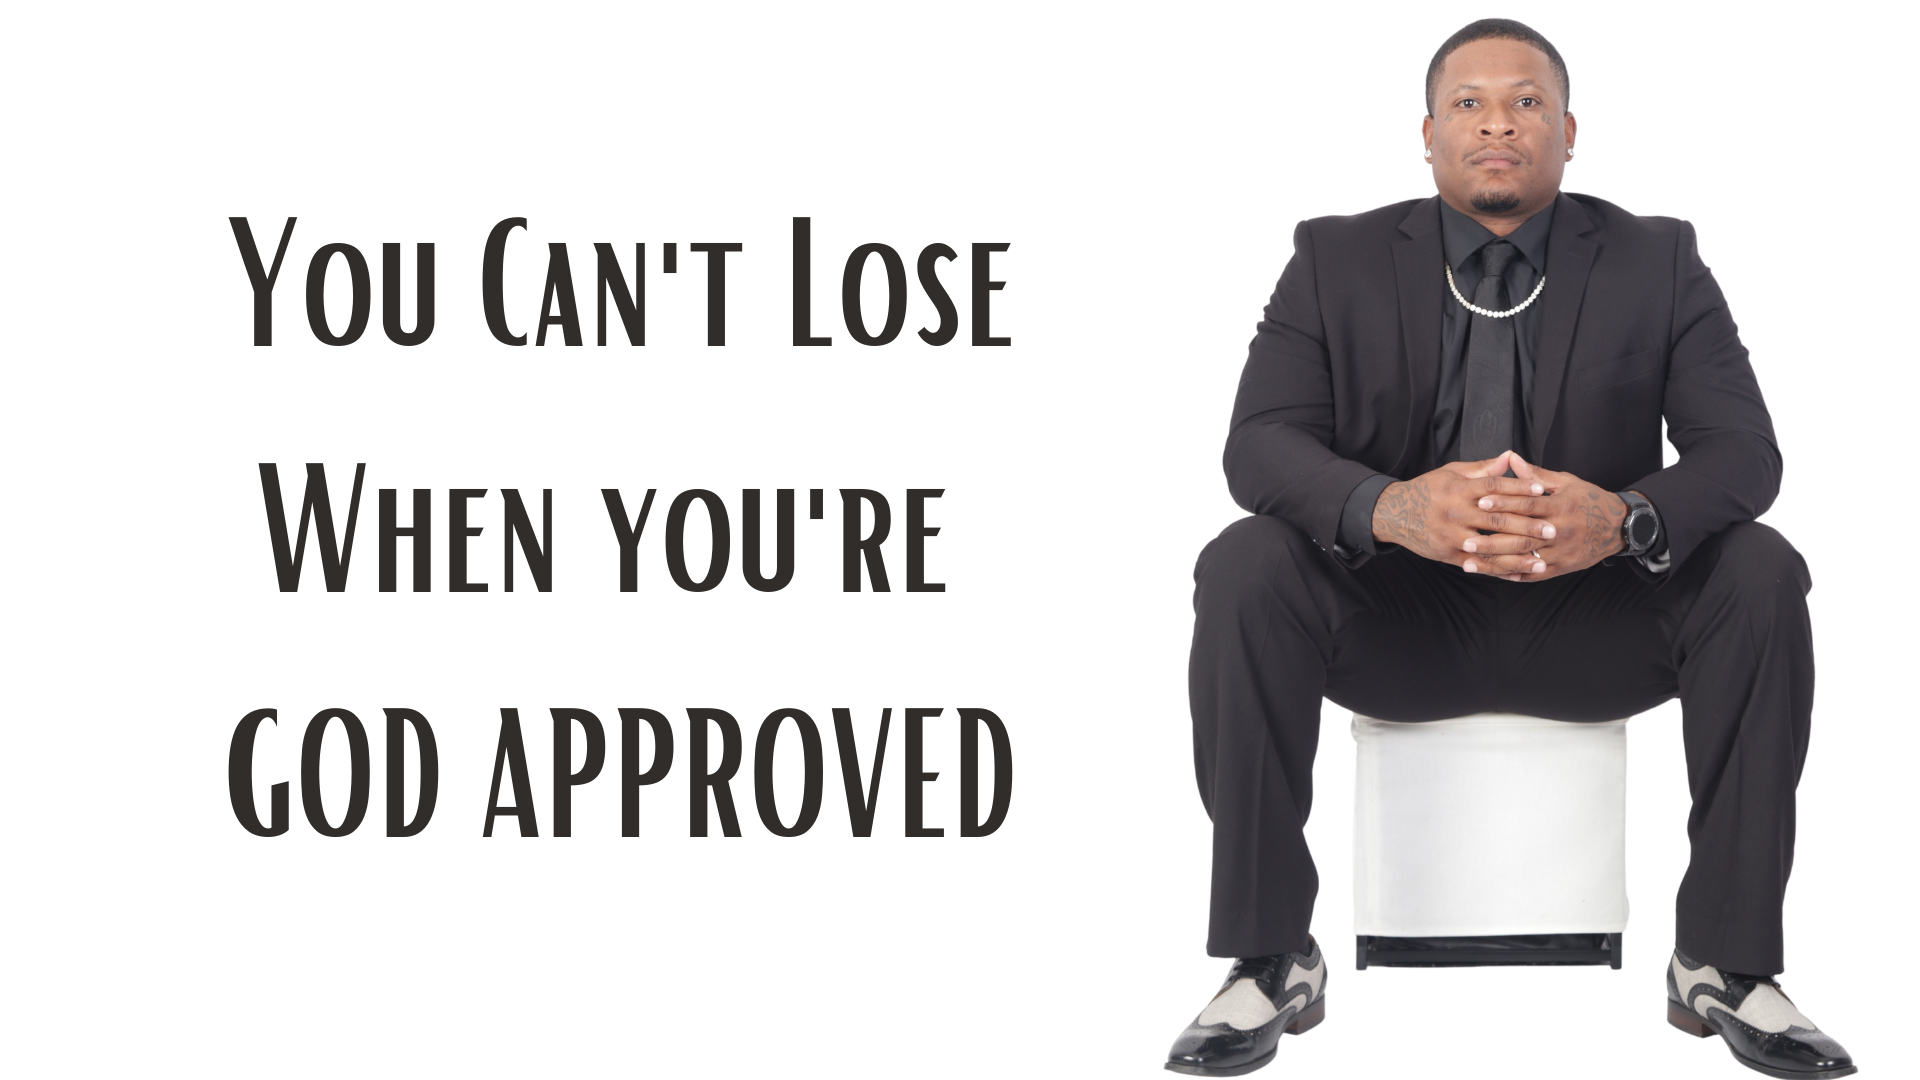 You Can't Lose When You're God Approved.